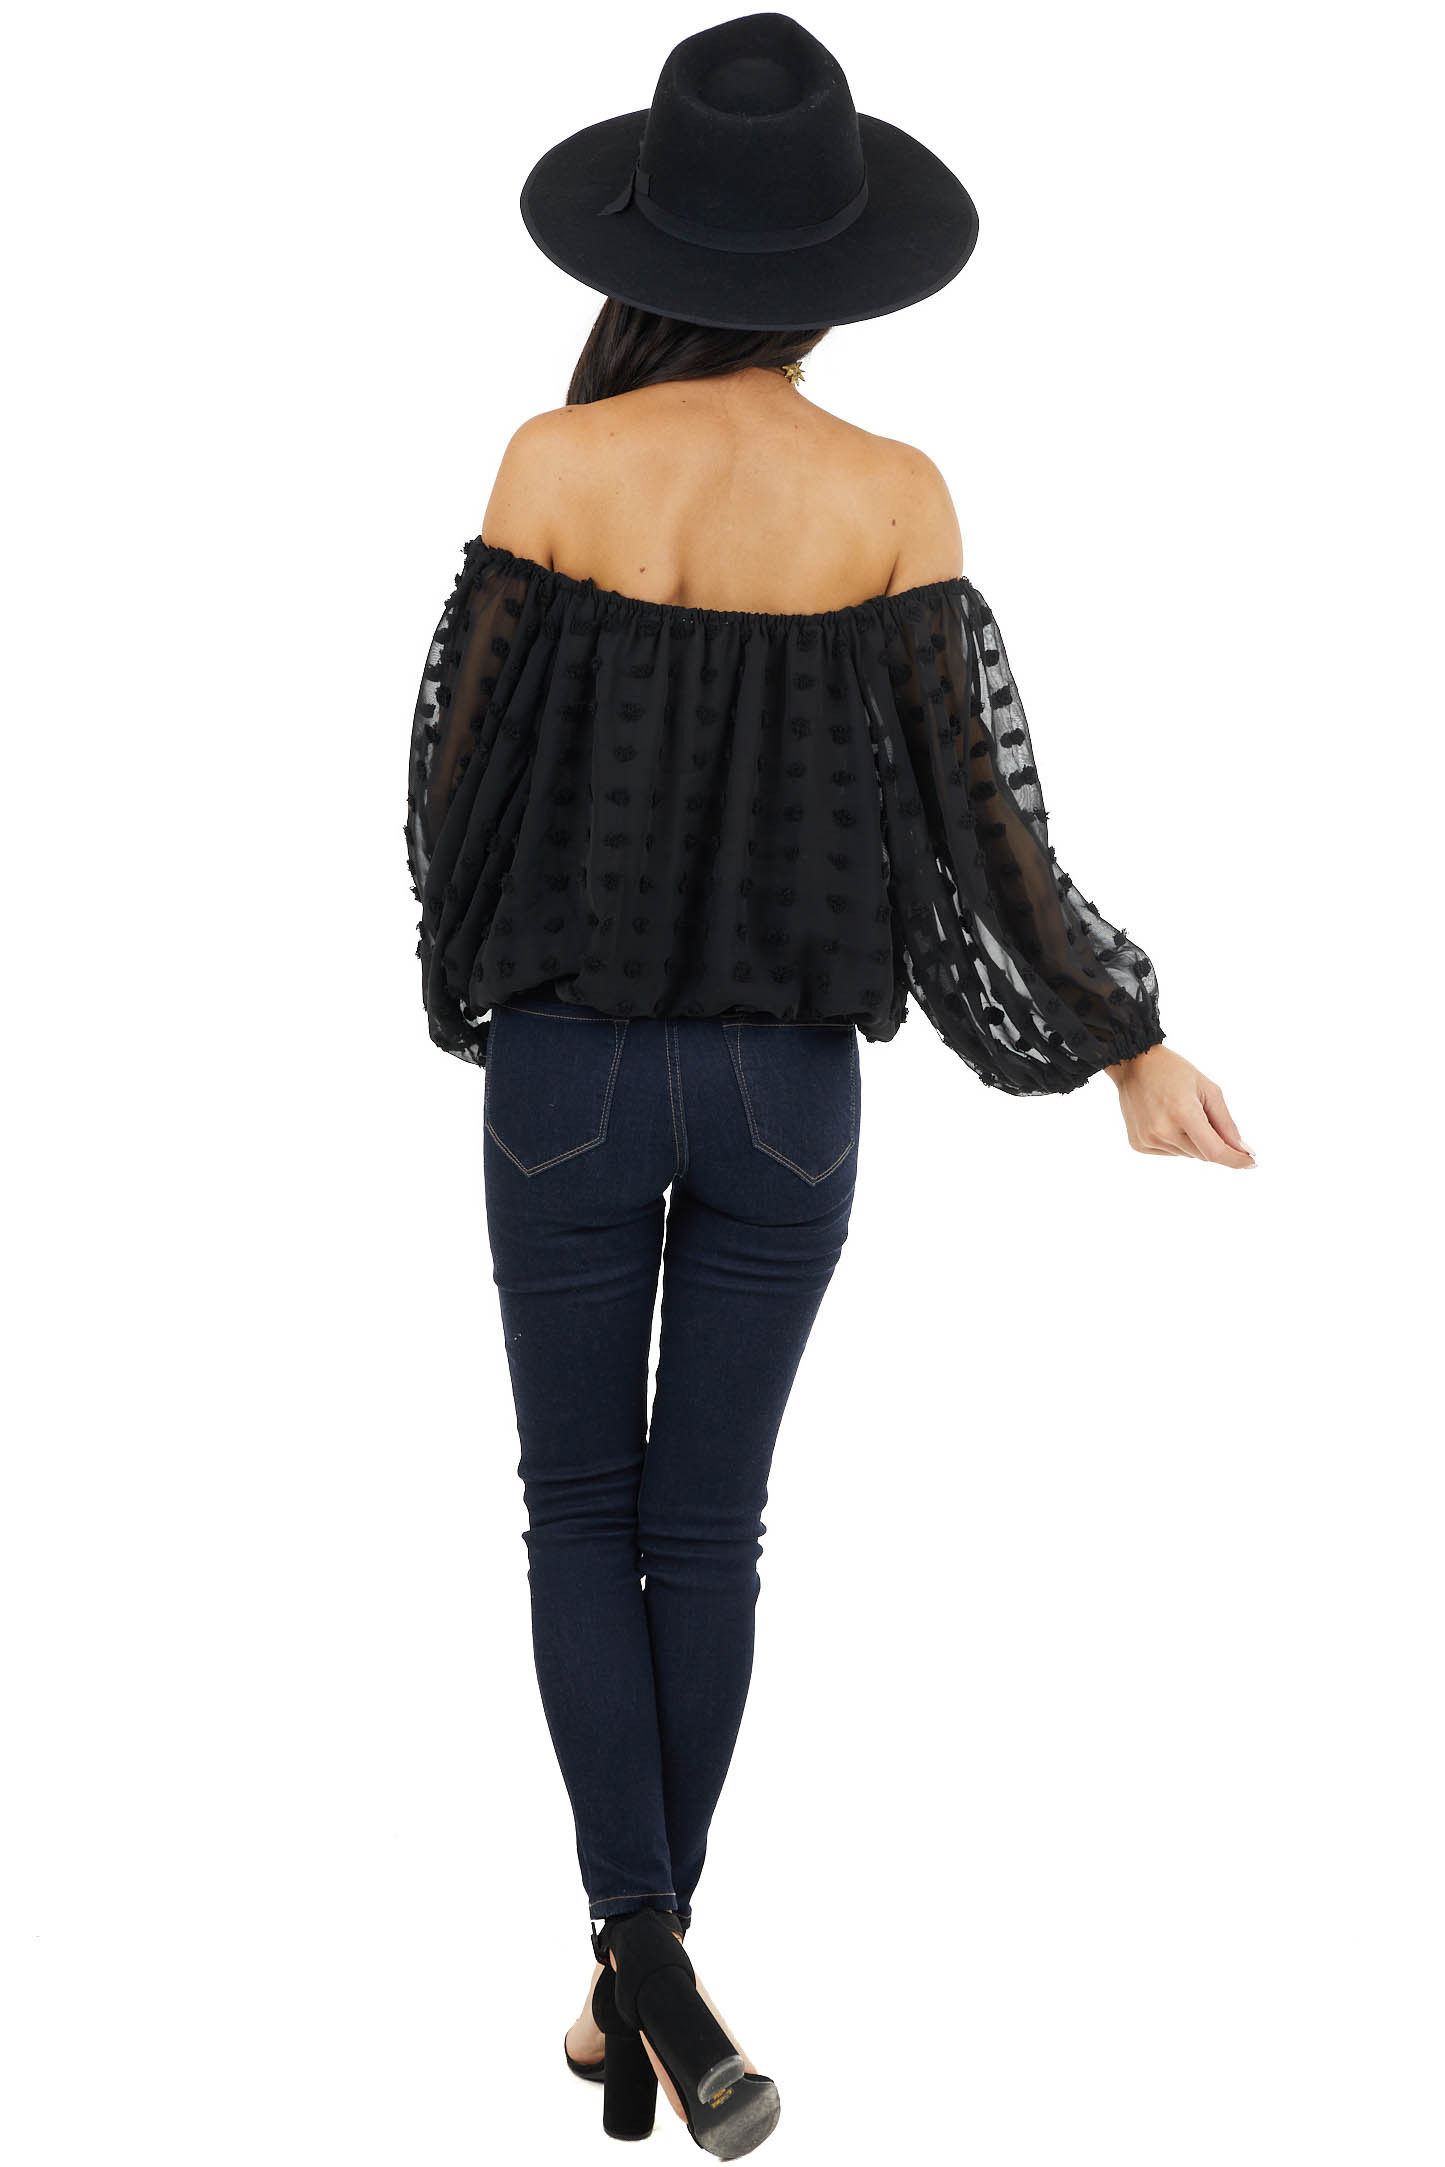 Black Off Shoulder Swiss Dot Crop Top with Puff Sleeves